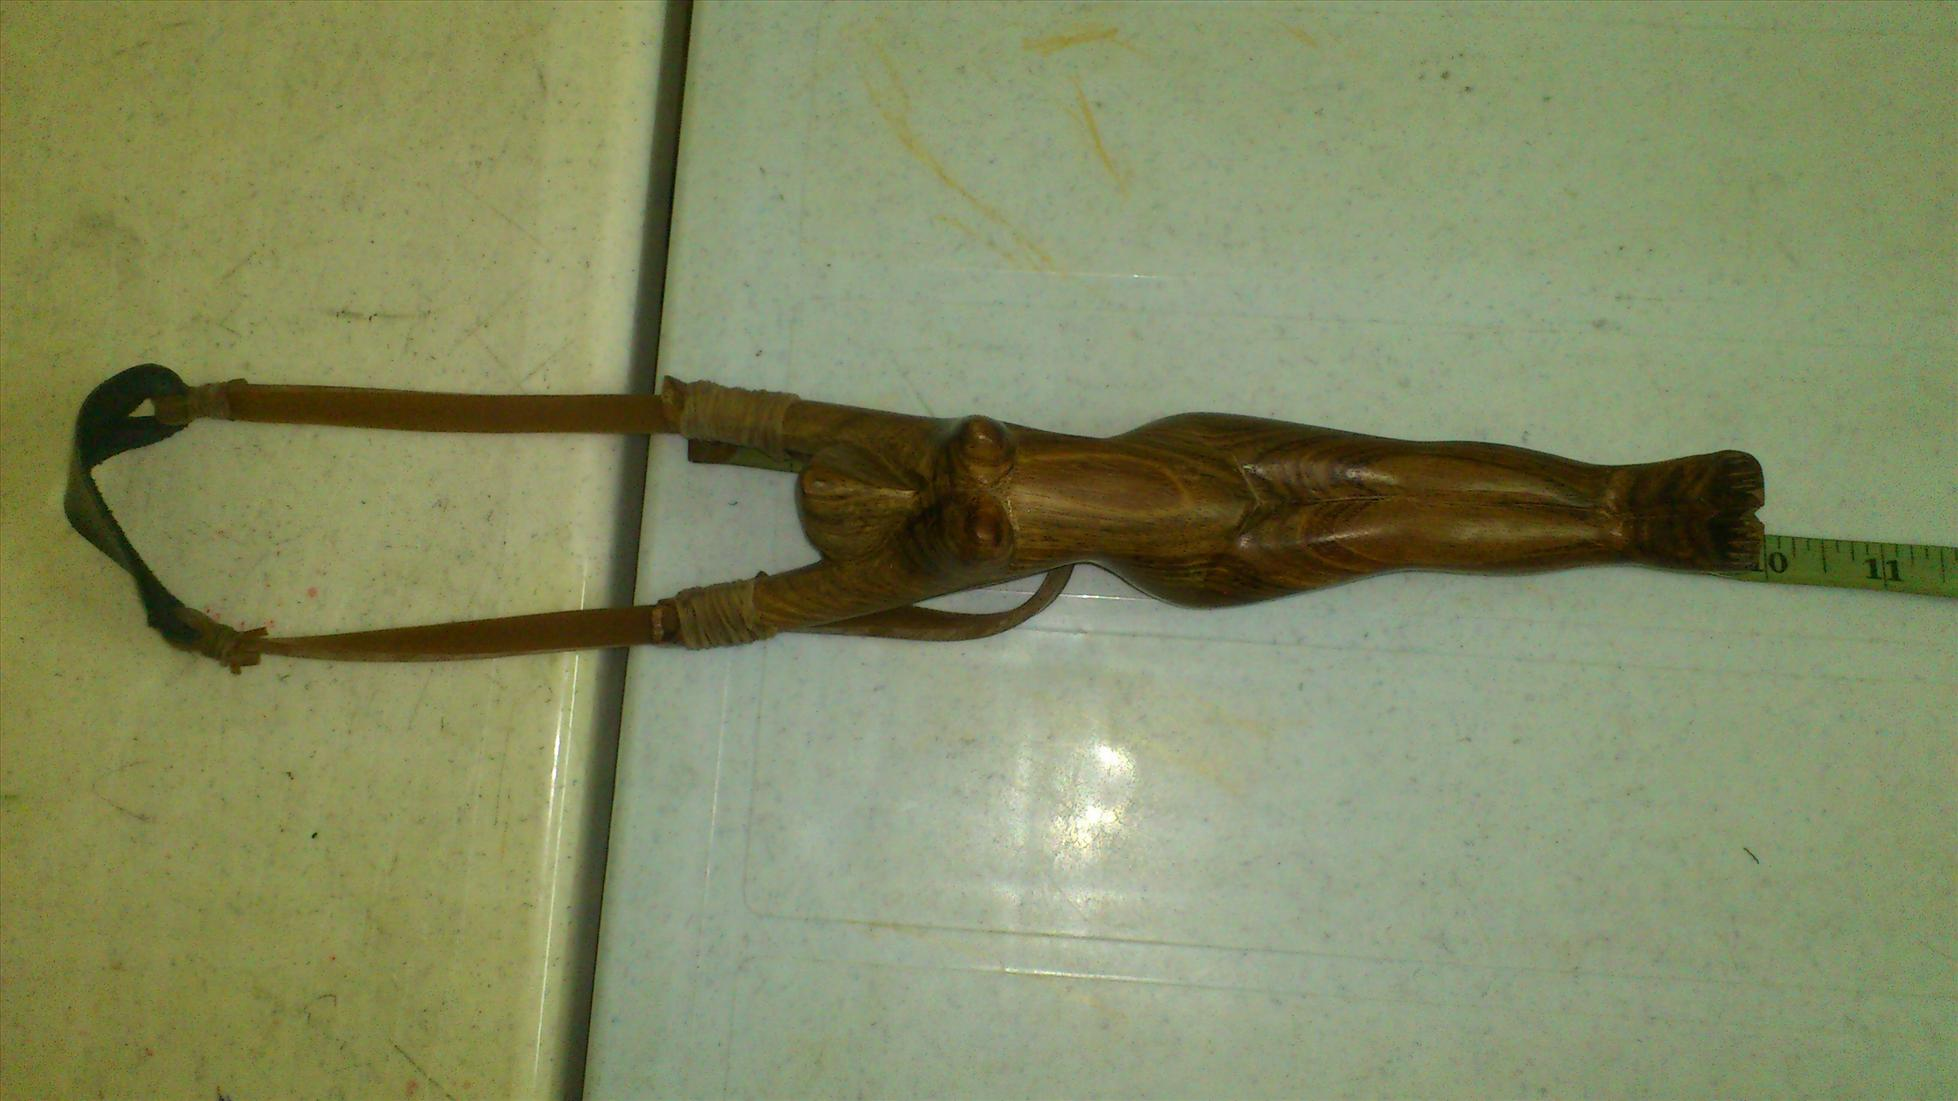 MYAMMAR  - LASTIK KAYU - Women Shape Wood Craft